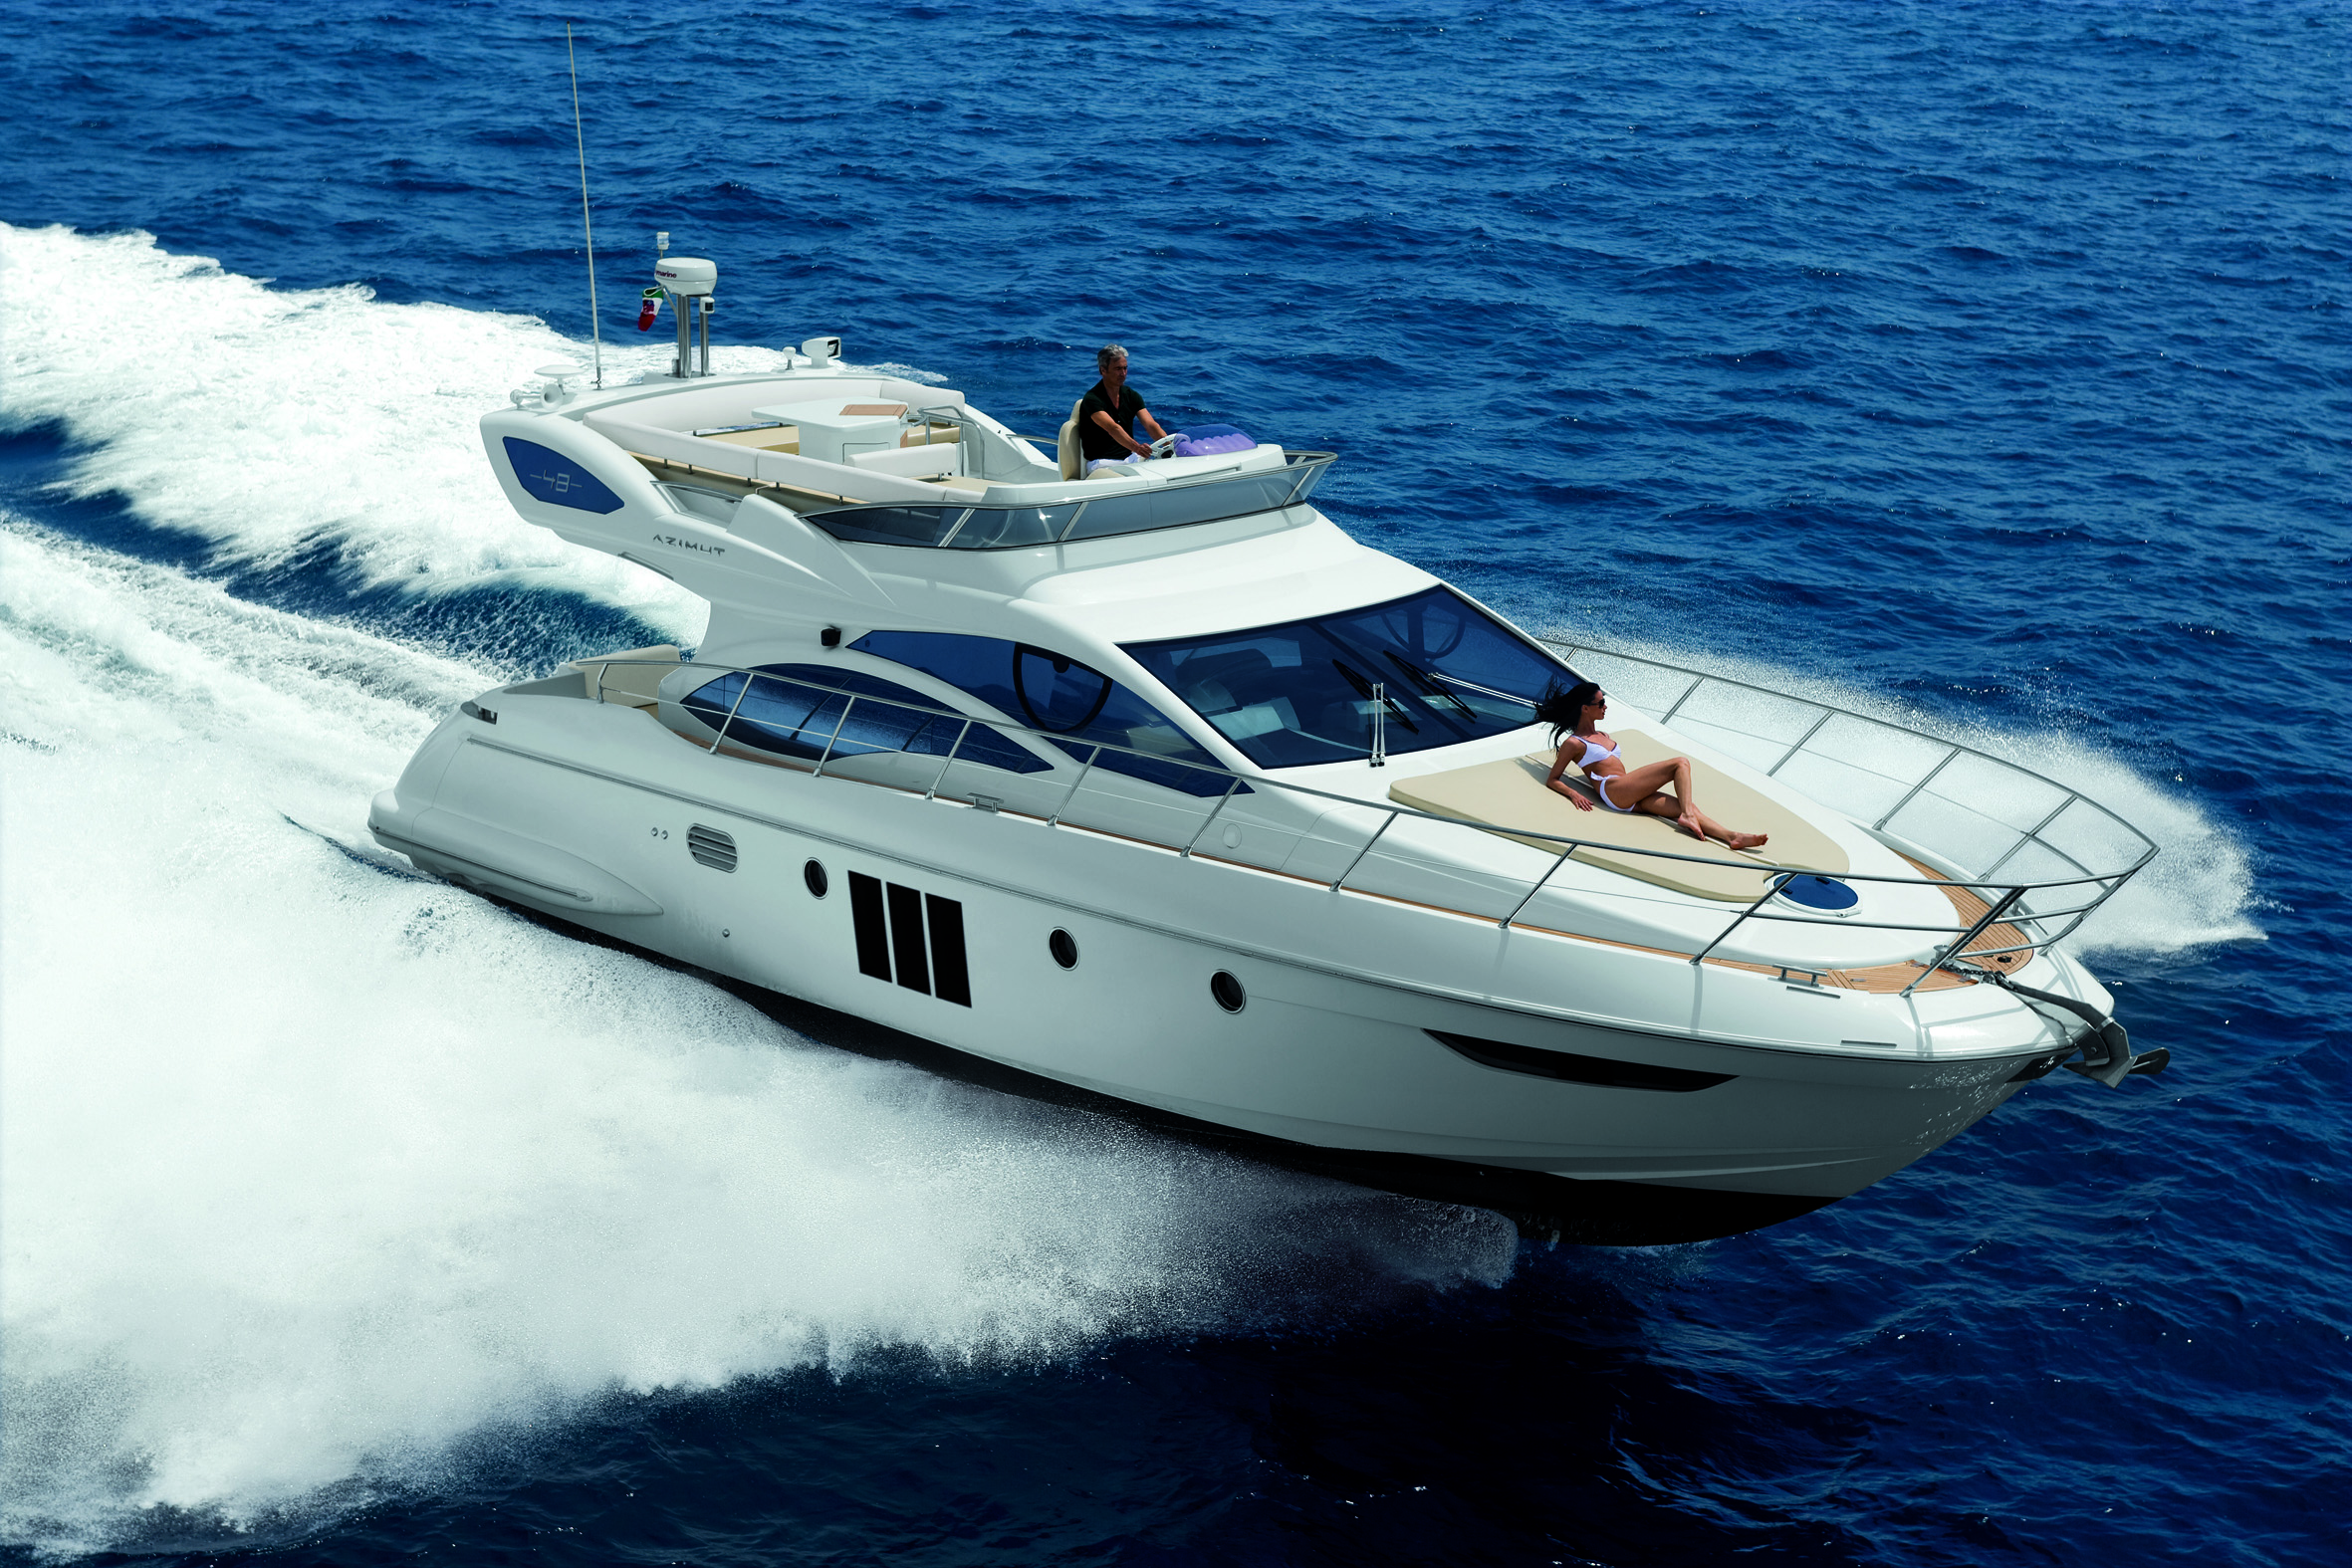 http://worldsportsboats.files.wordpress.com/2010/11/azimut_48_running_2.jpg